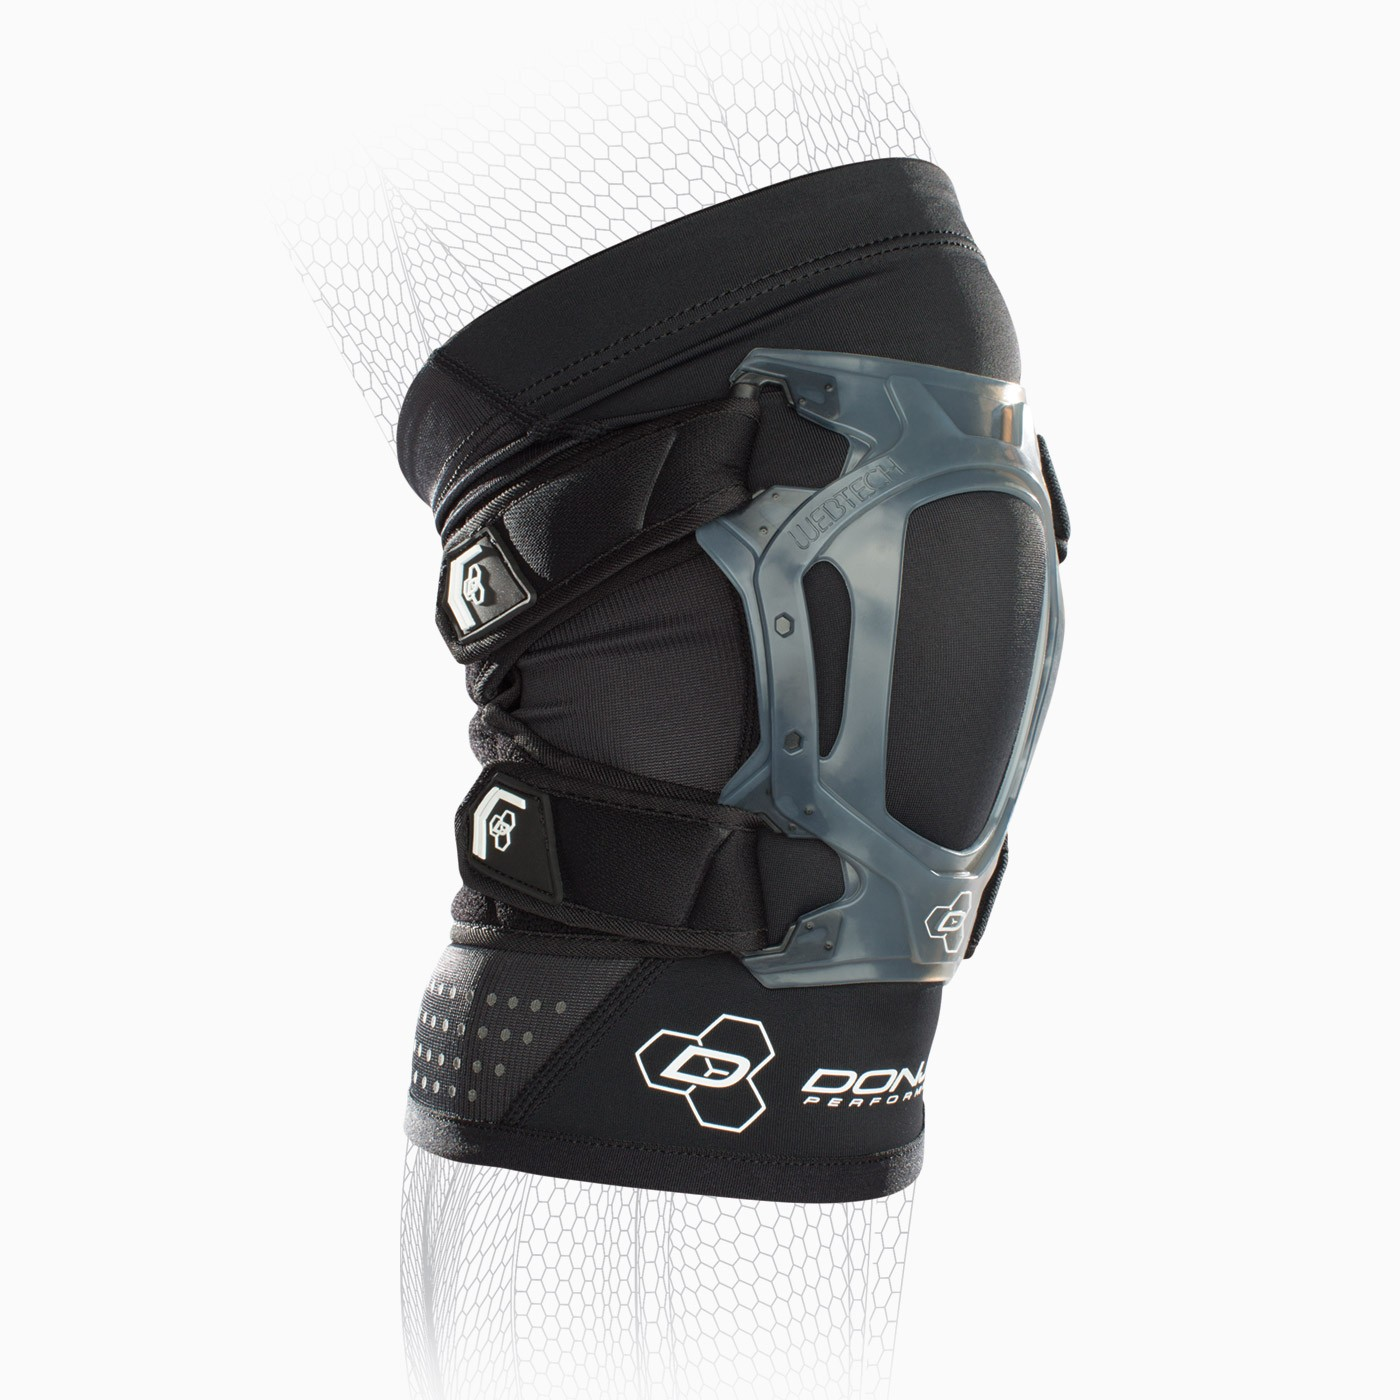 81d5a8da88 DonJoy Performance Webtech Short Knee Brace | DonJoyPerformance.com